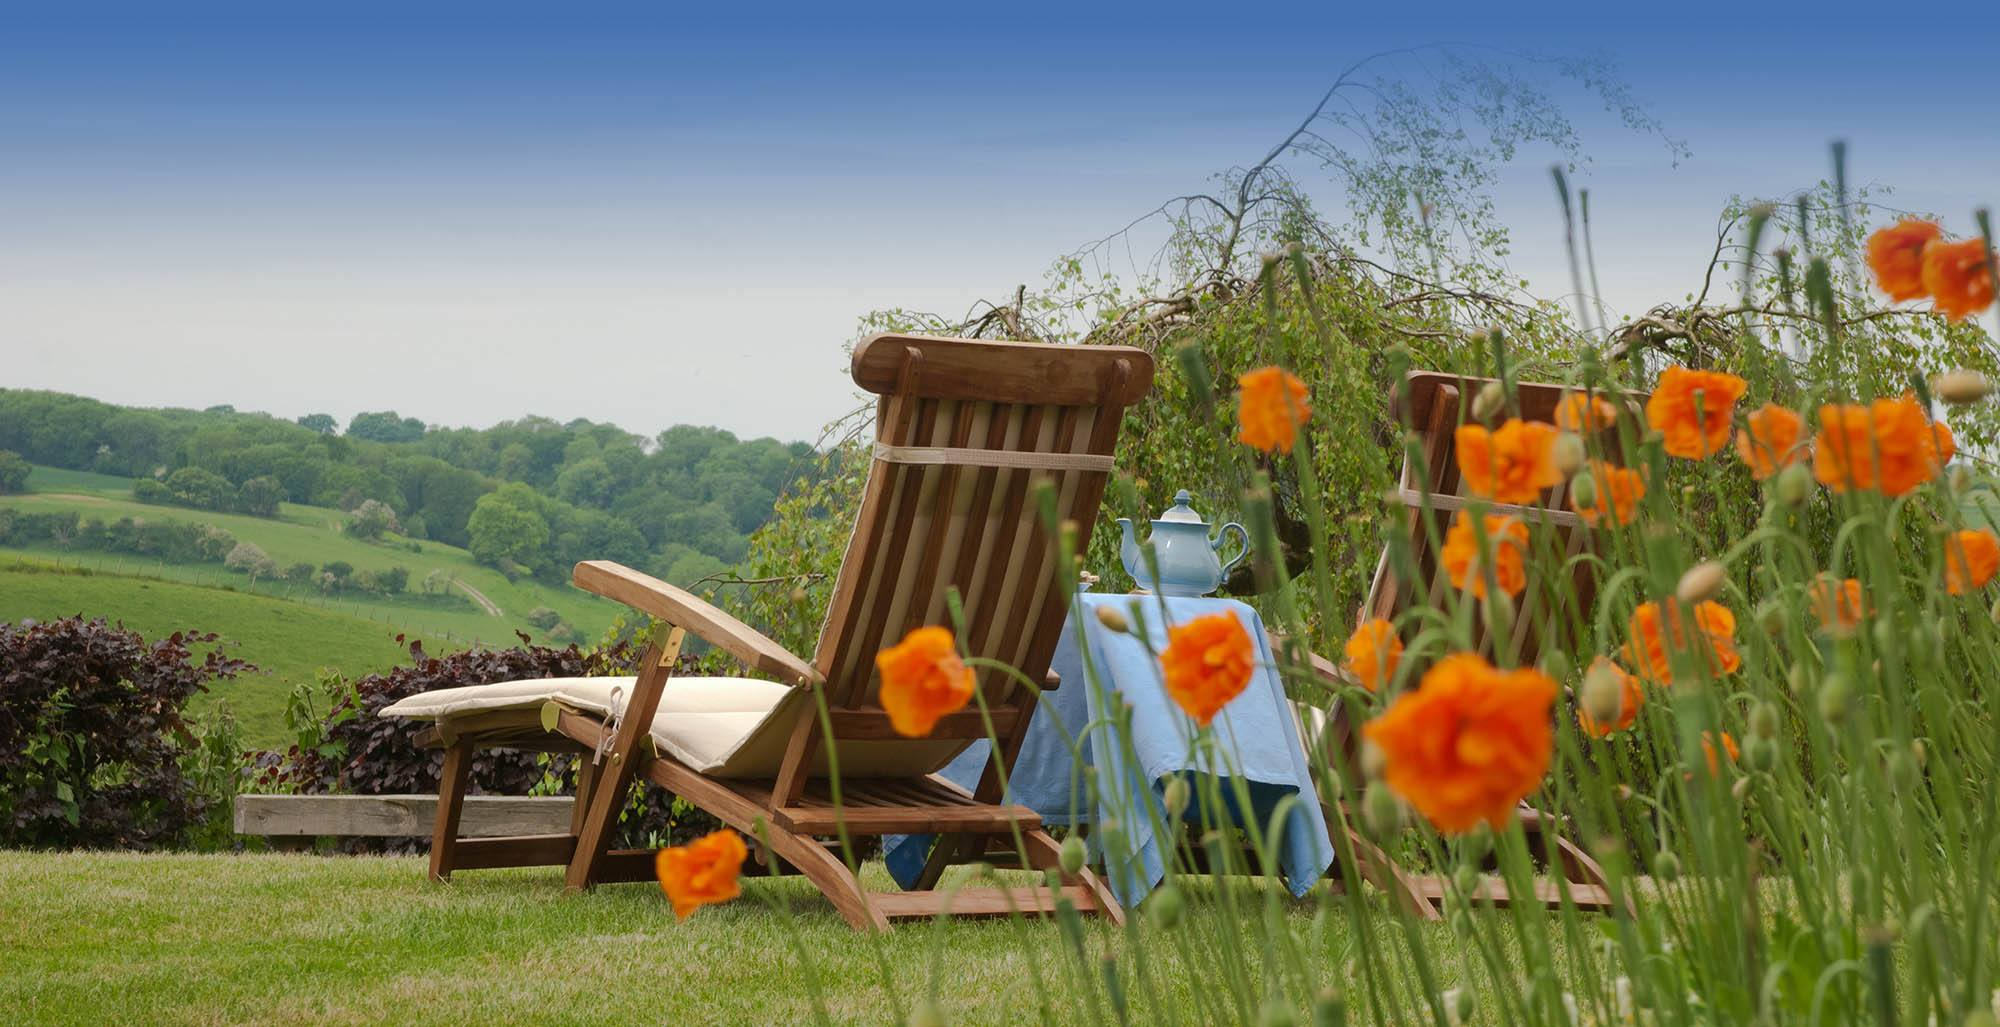 alkham_valley_dover_chairs1